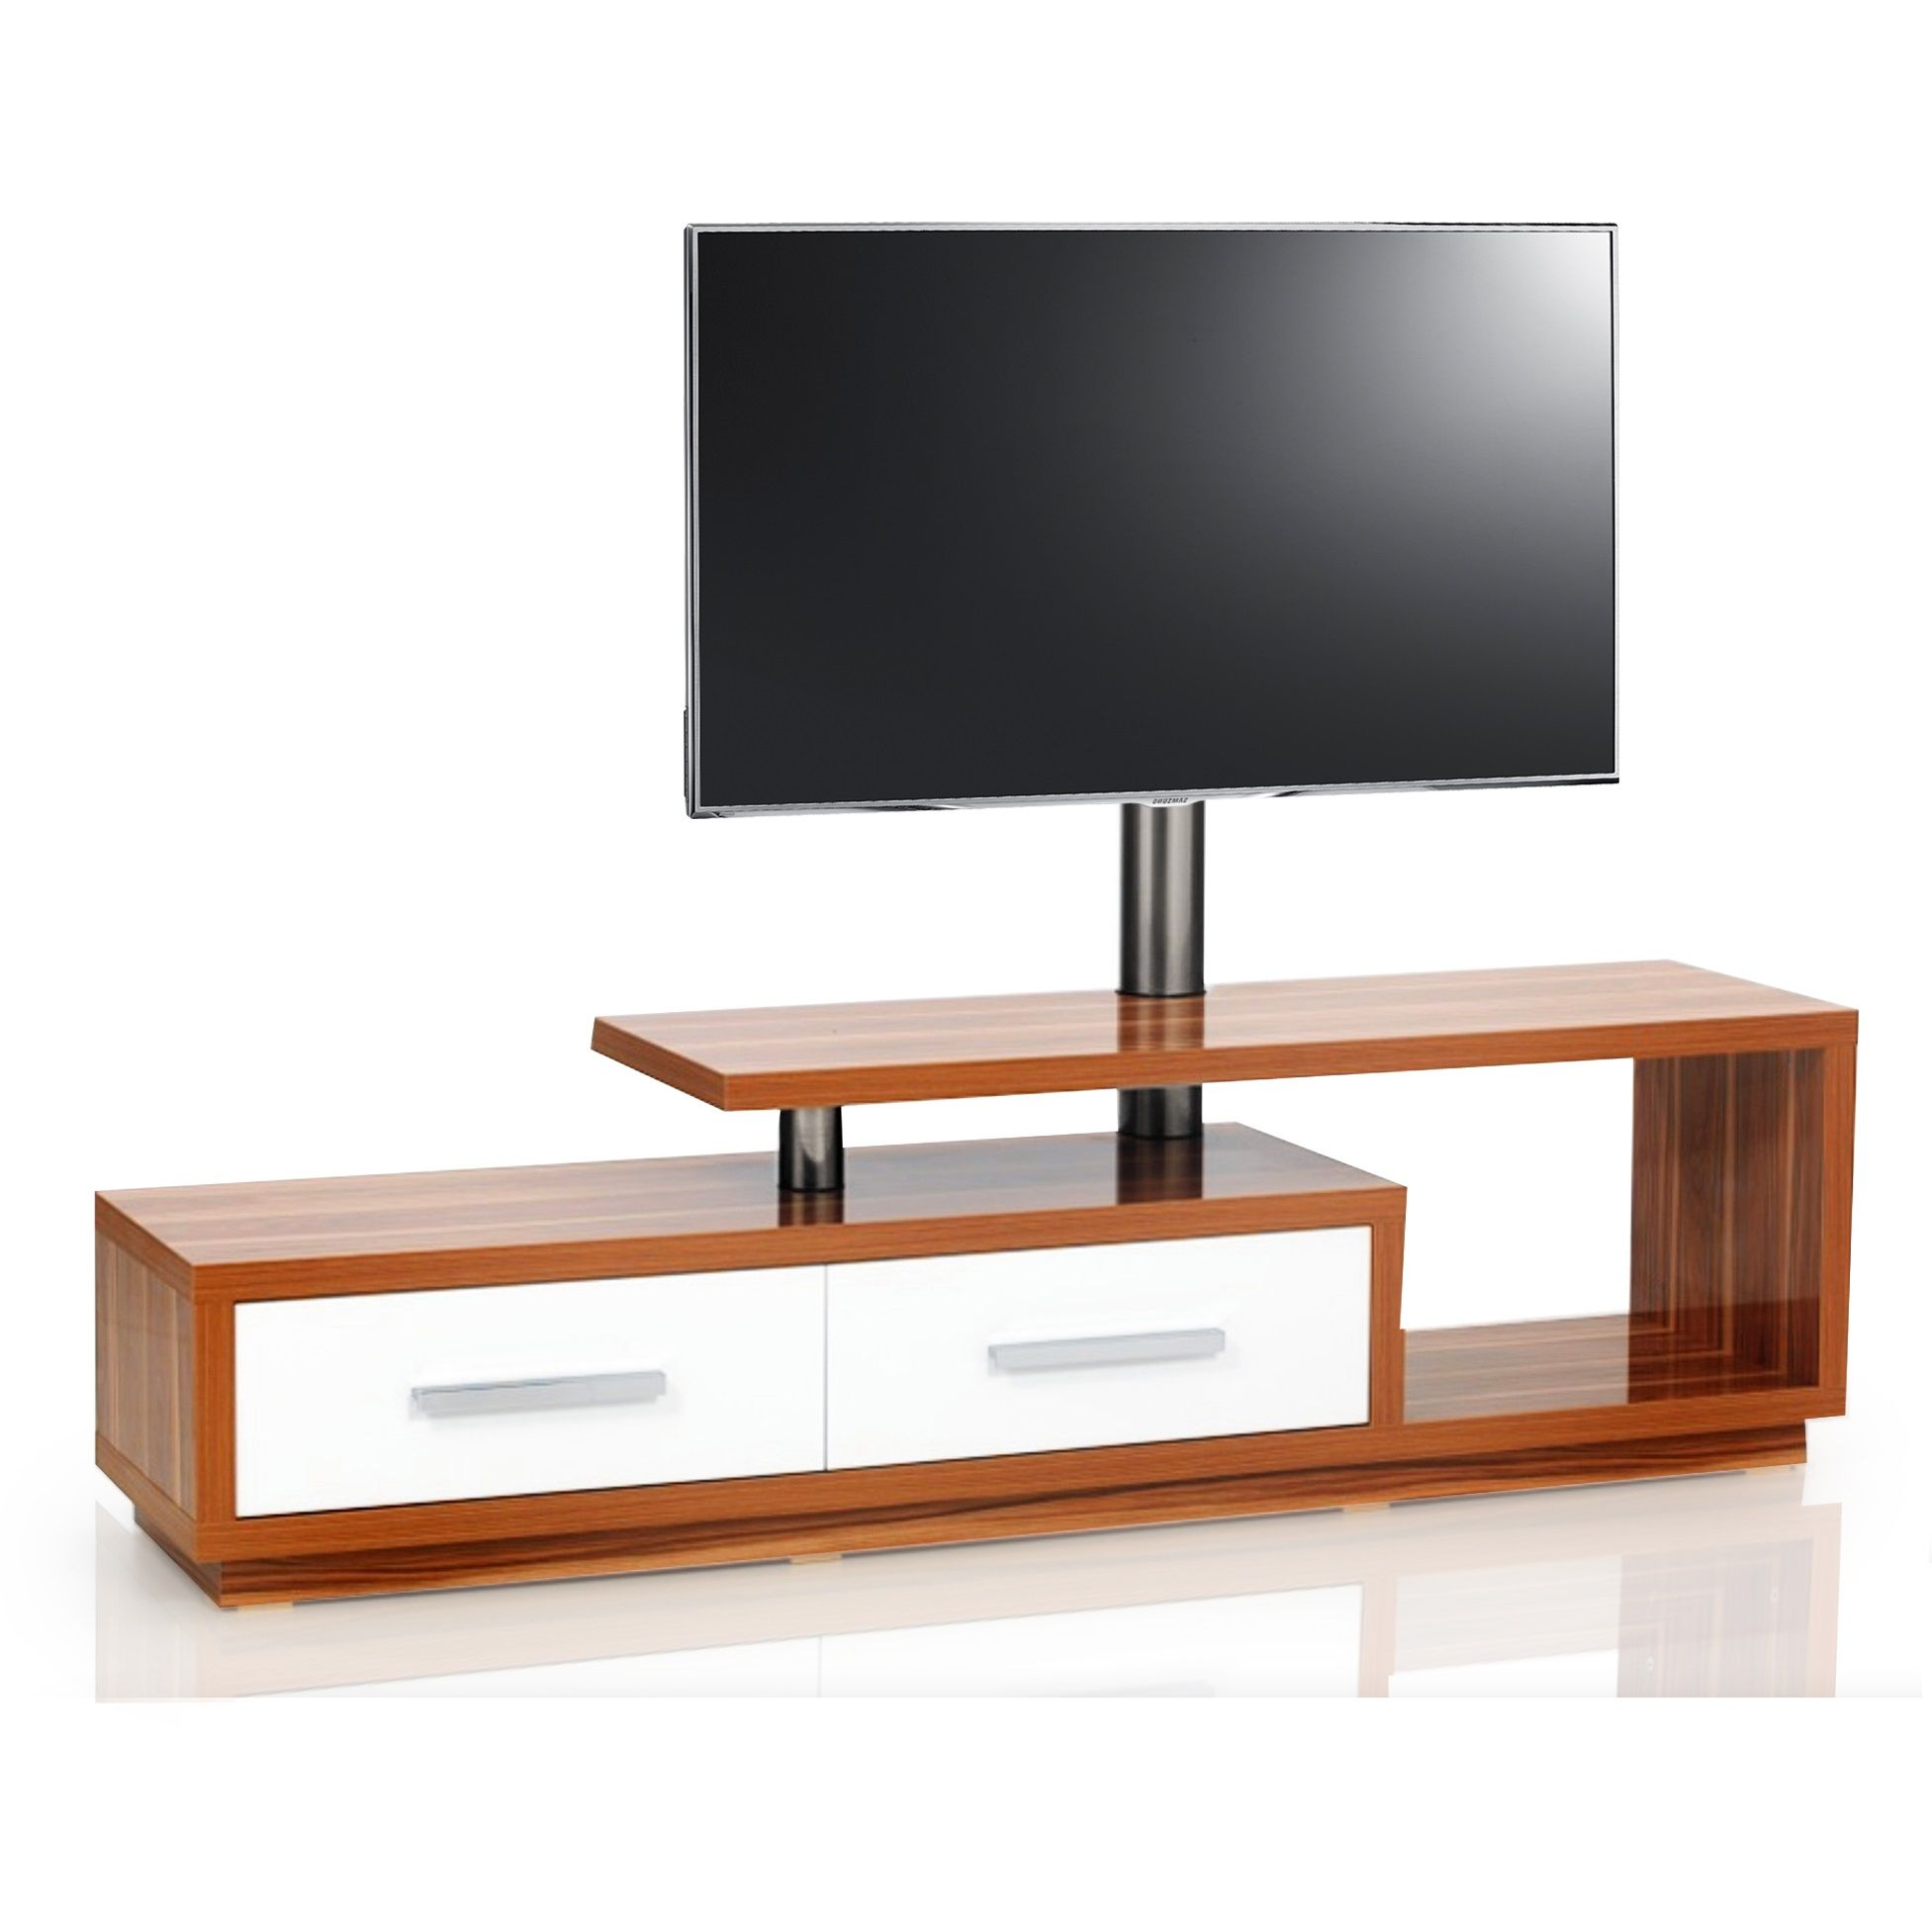 Stunning Tables De Television Contemporary Joshkrajcik Us  # Table Television Ecran Plat